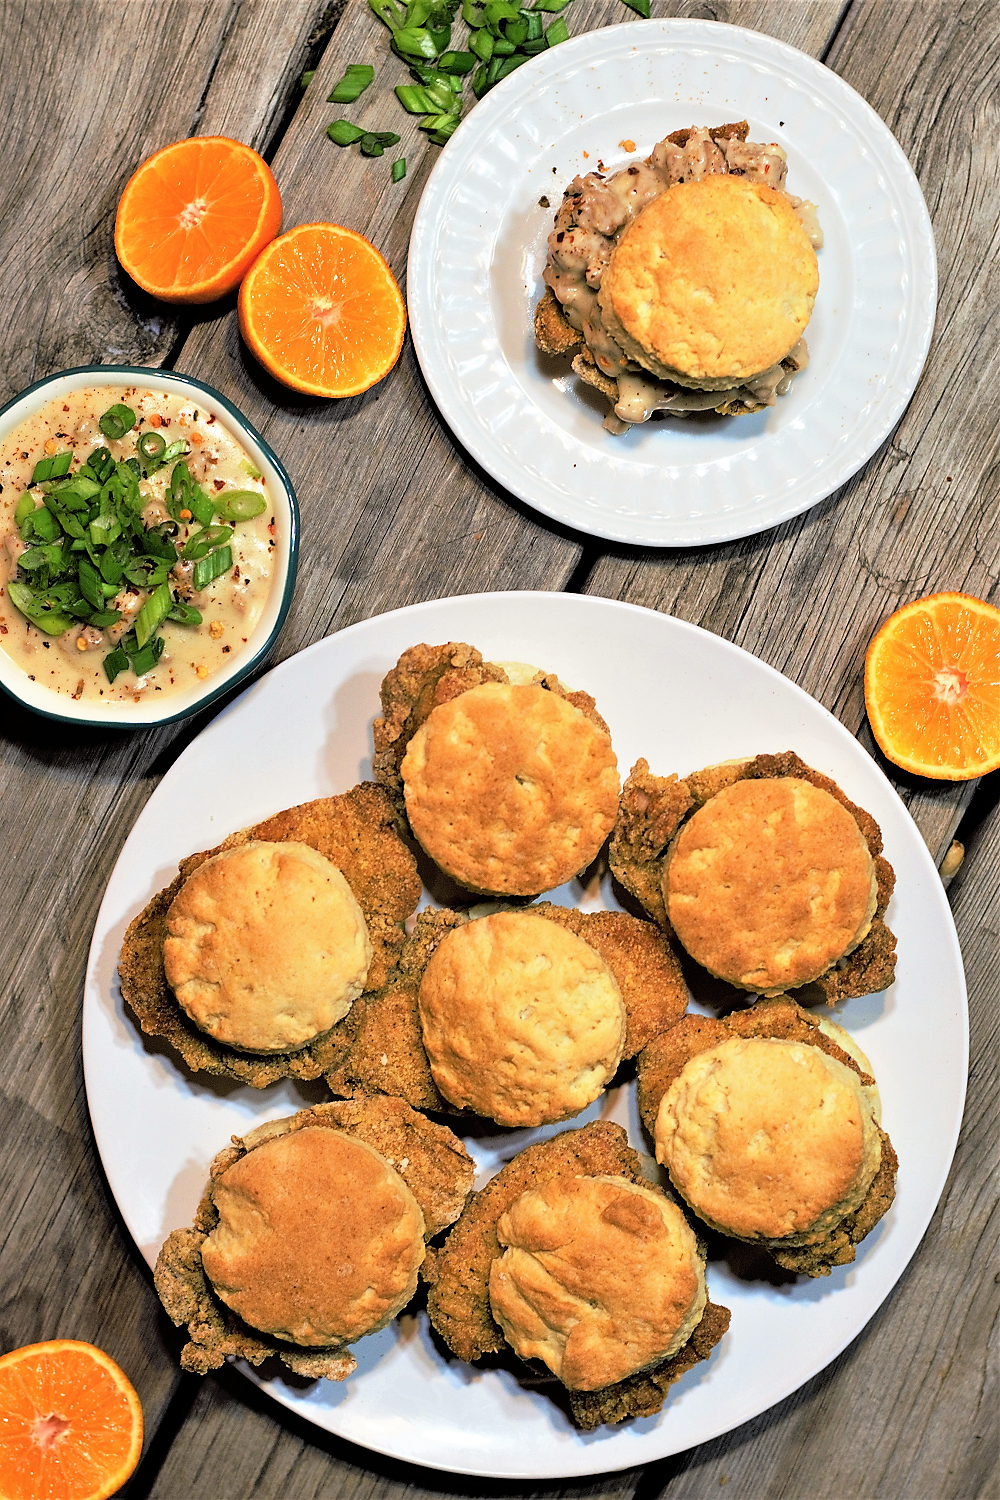 Step up your brunch game this weekend: juicy oven-fried chicken on flaky biscuits drowned in sausage gravy arethe ultimate stuff-your-face comfort (or hangover) food!